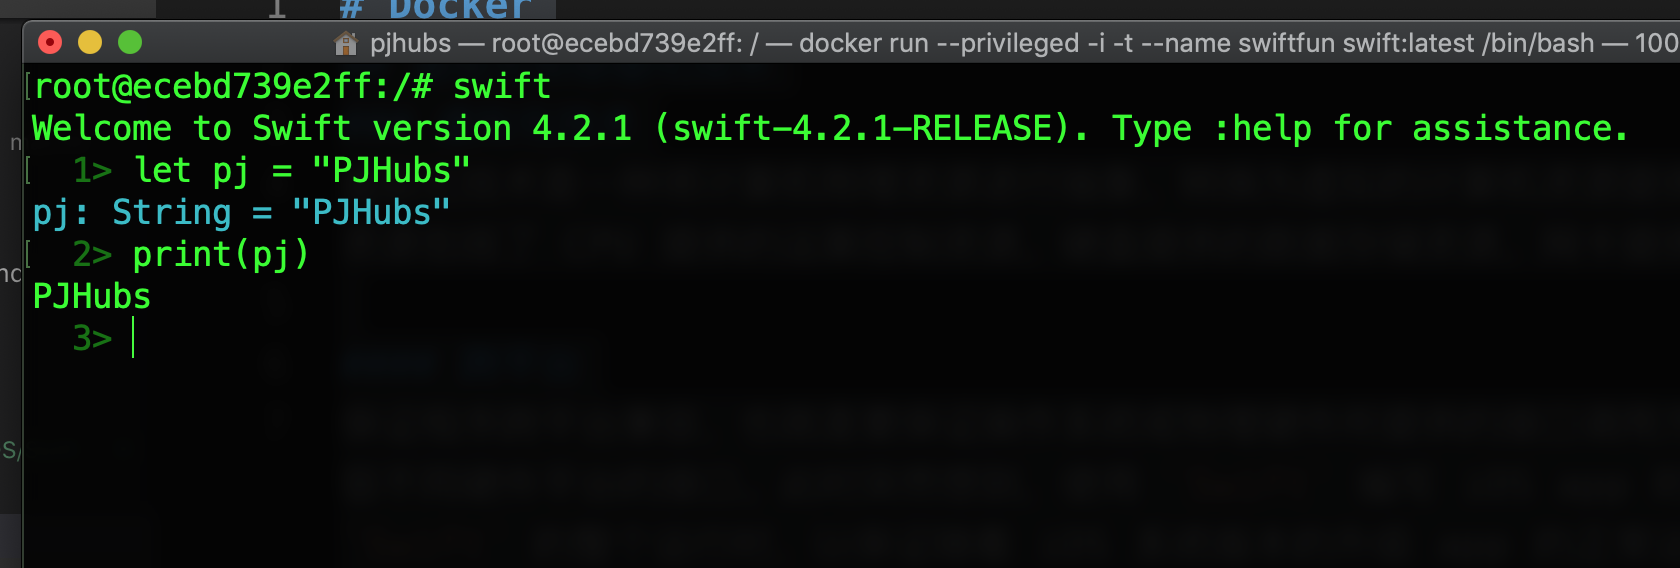 Swift-Docker.png